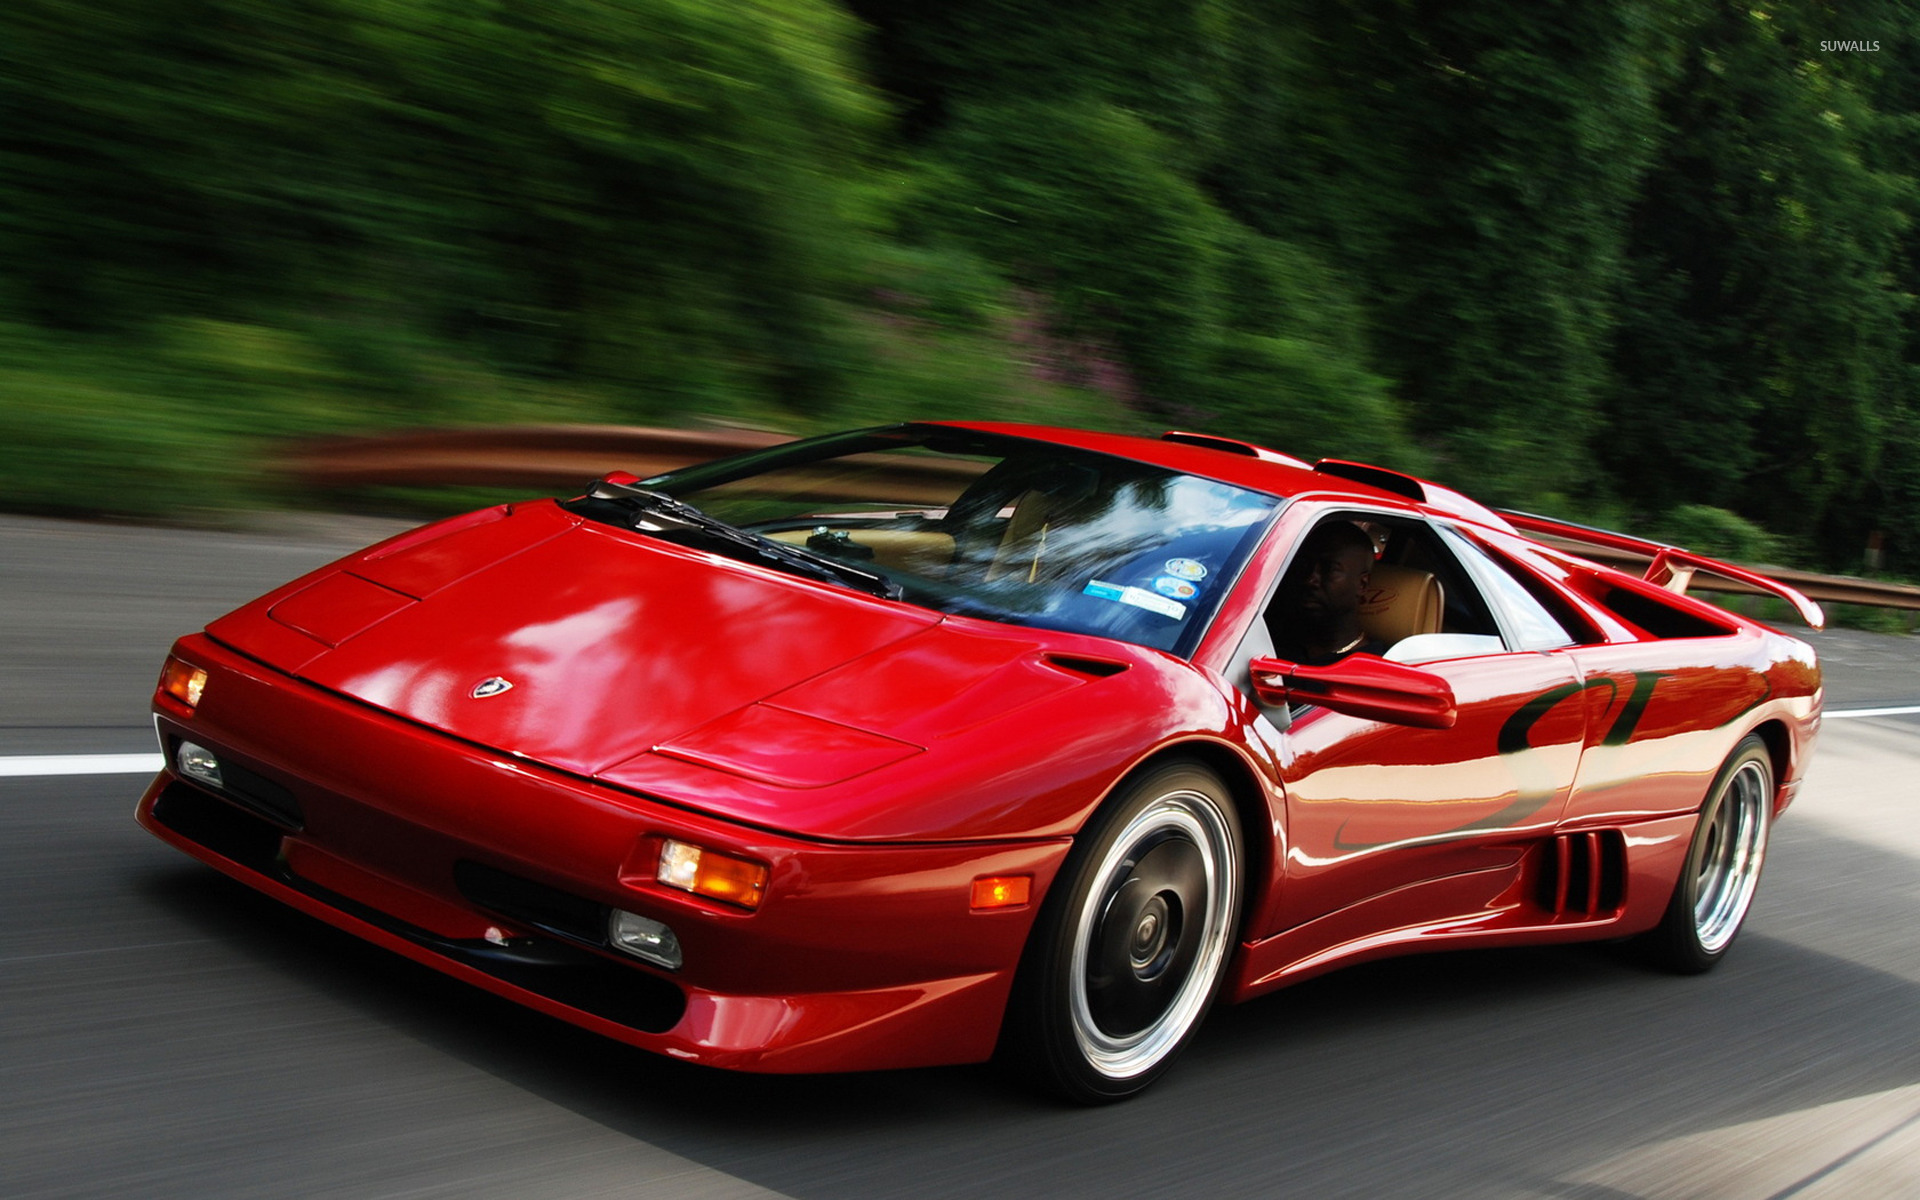 Lamborghini Diablo Wallpaper Car Wallpapers 37864